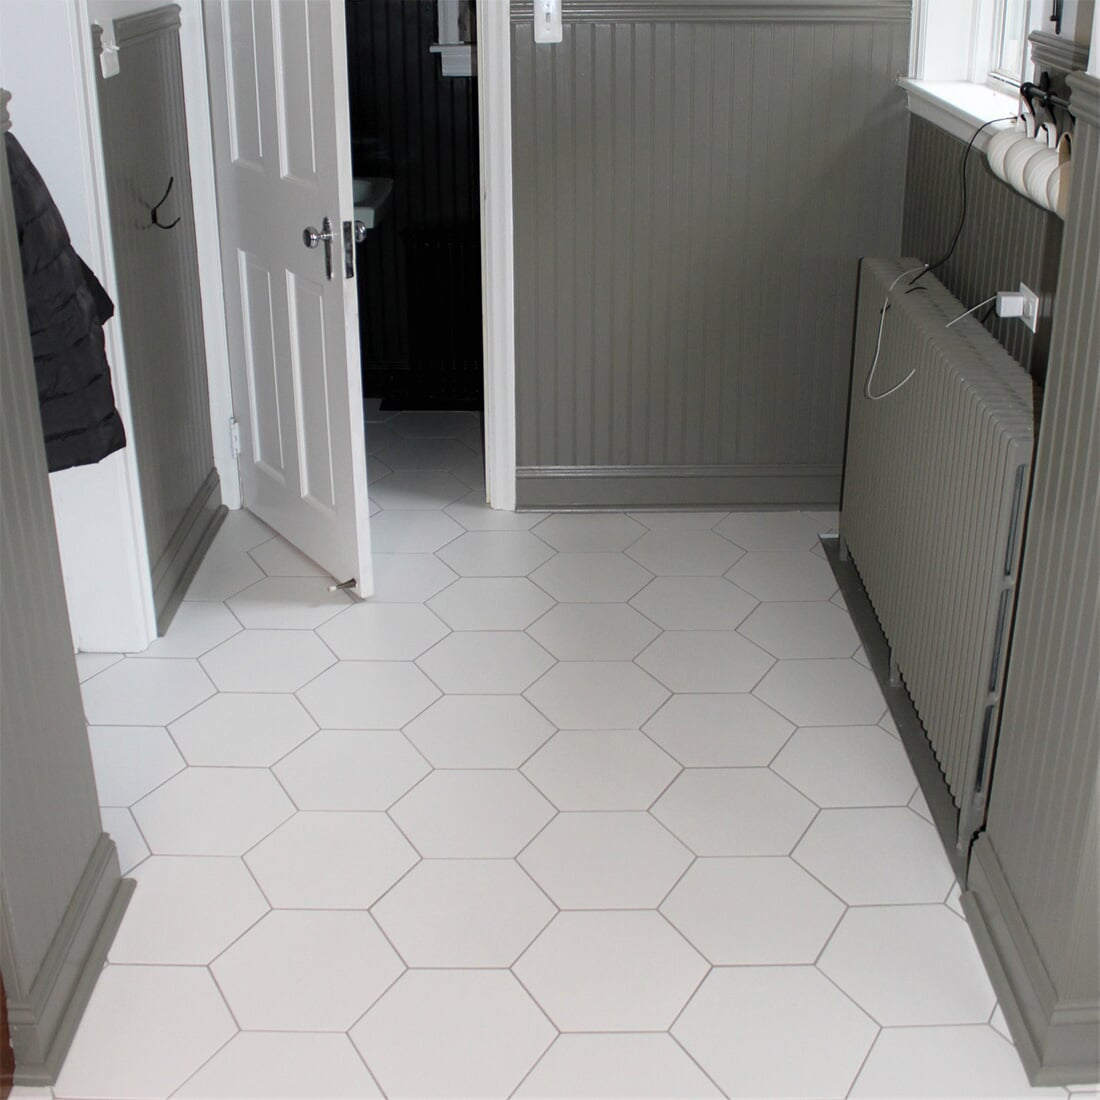 Tile flooring in Ephrata, PA from Nolt's Floor Covering, Inc.